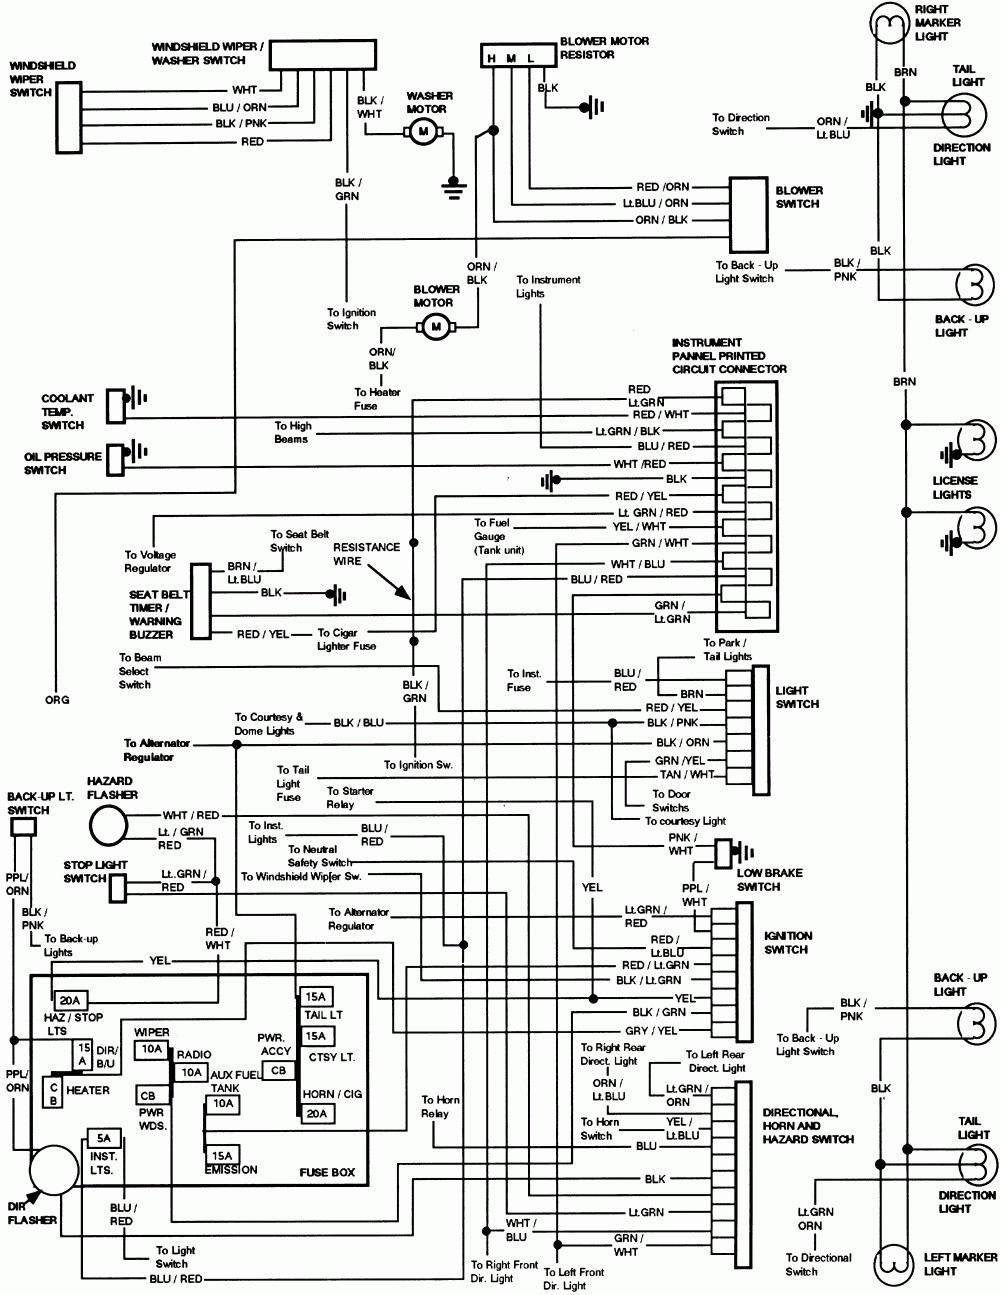 hight resolution of 1989 ford f 250 solenoid wiring diagram images gallery